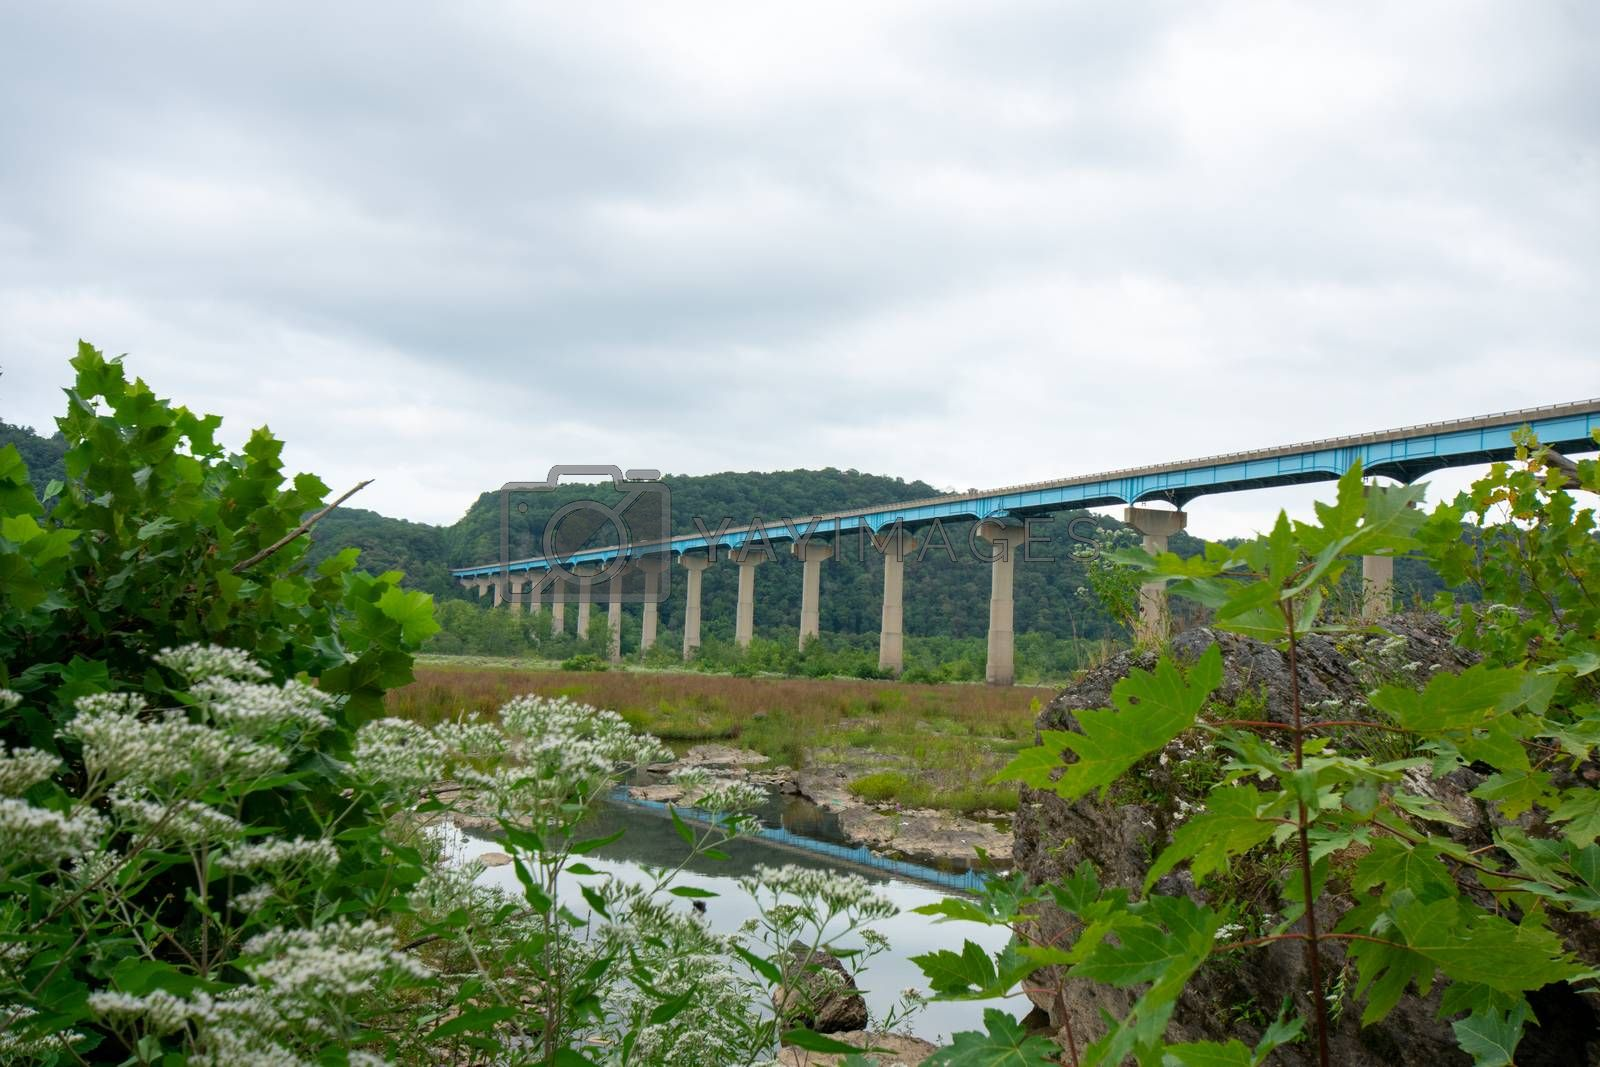 Looking in-between plants and rocks at The Norman Wood Bridge Over the Susquehanna River on a Cloudy Overcast Sky